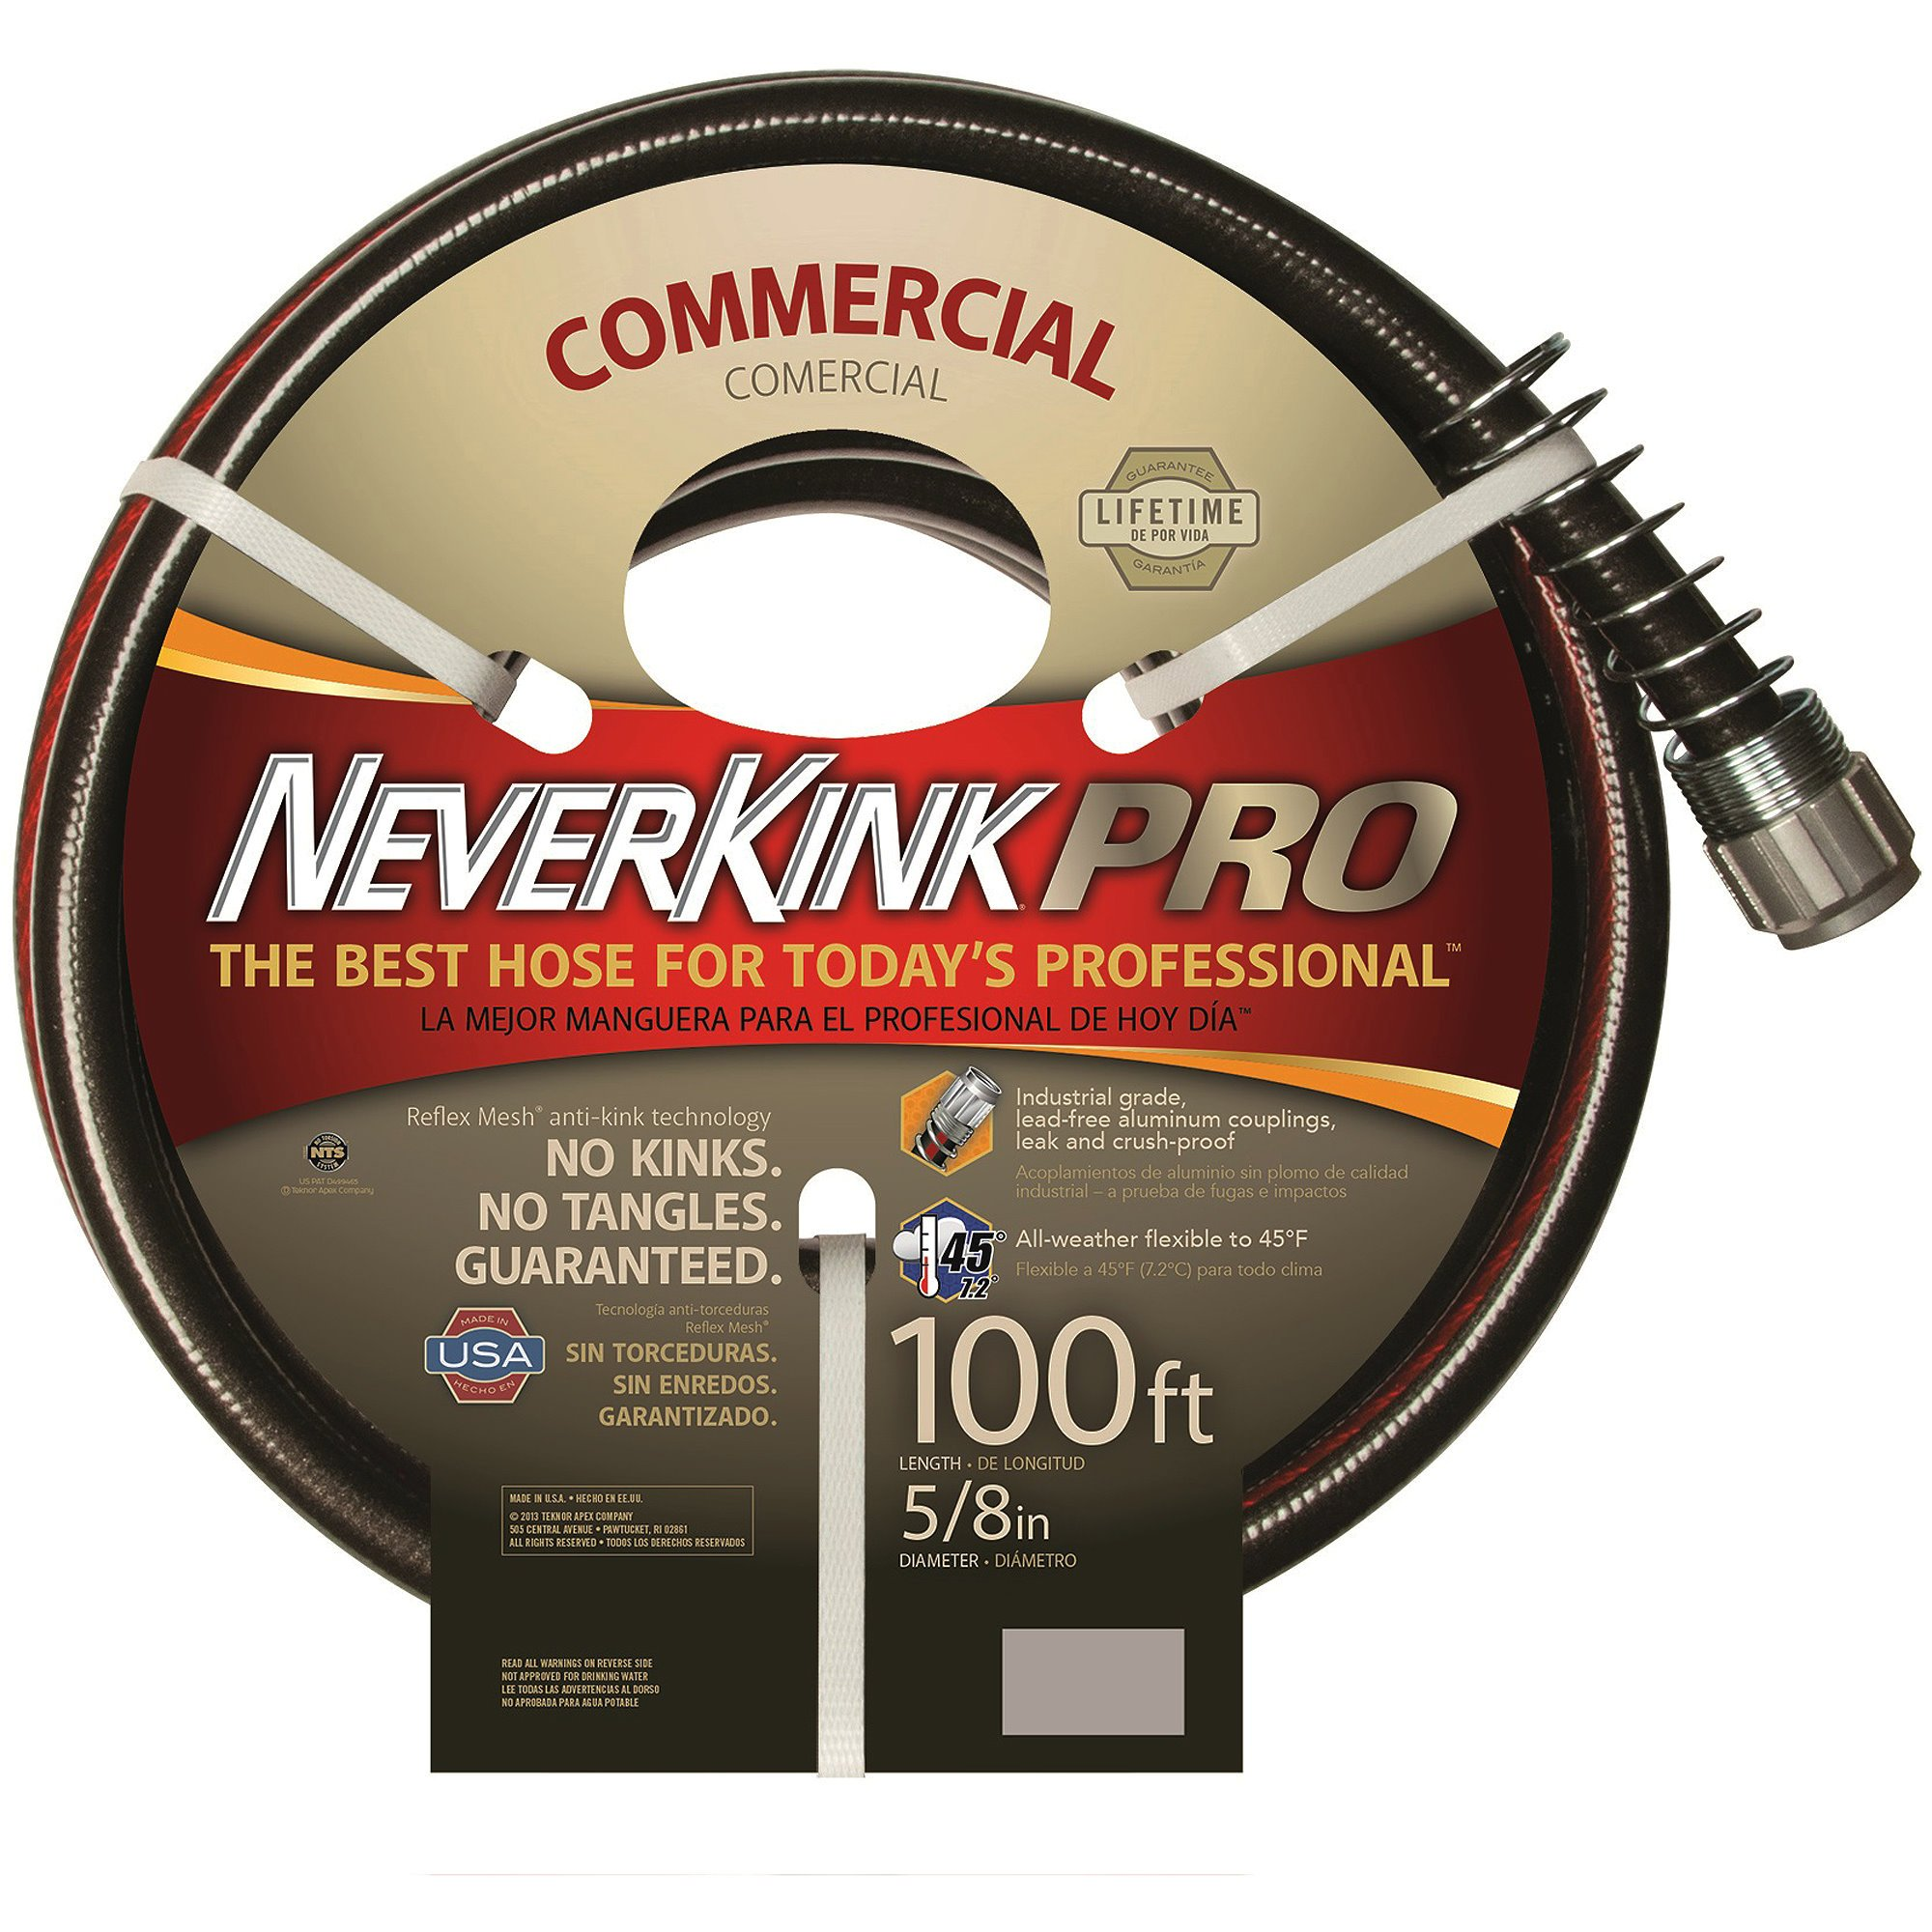 Garden - Hose Flexogen, Portable, Lightweight & Commercial Duty. Neverkink, No Tangles. Perfect For Patio & Poolside Cleaning, Yard, Backyard, Lawn (100' 5/8'') Black/Red